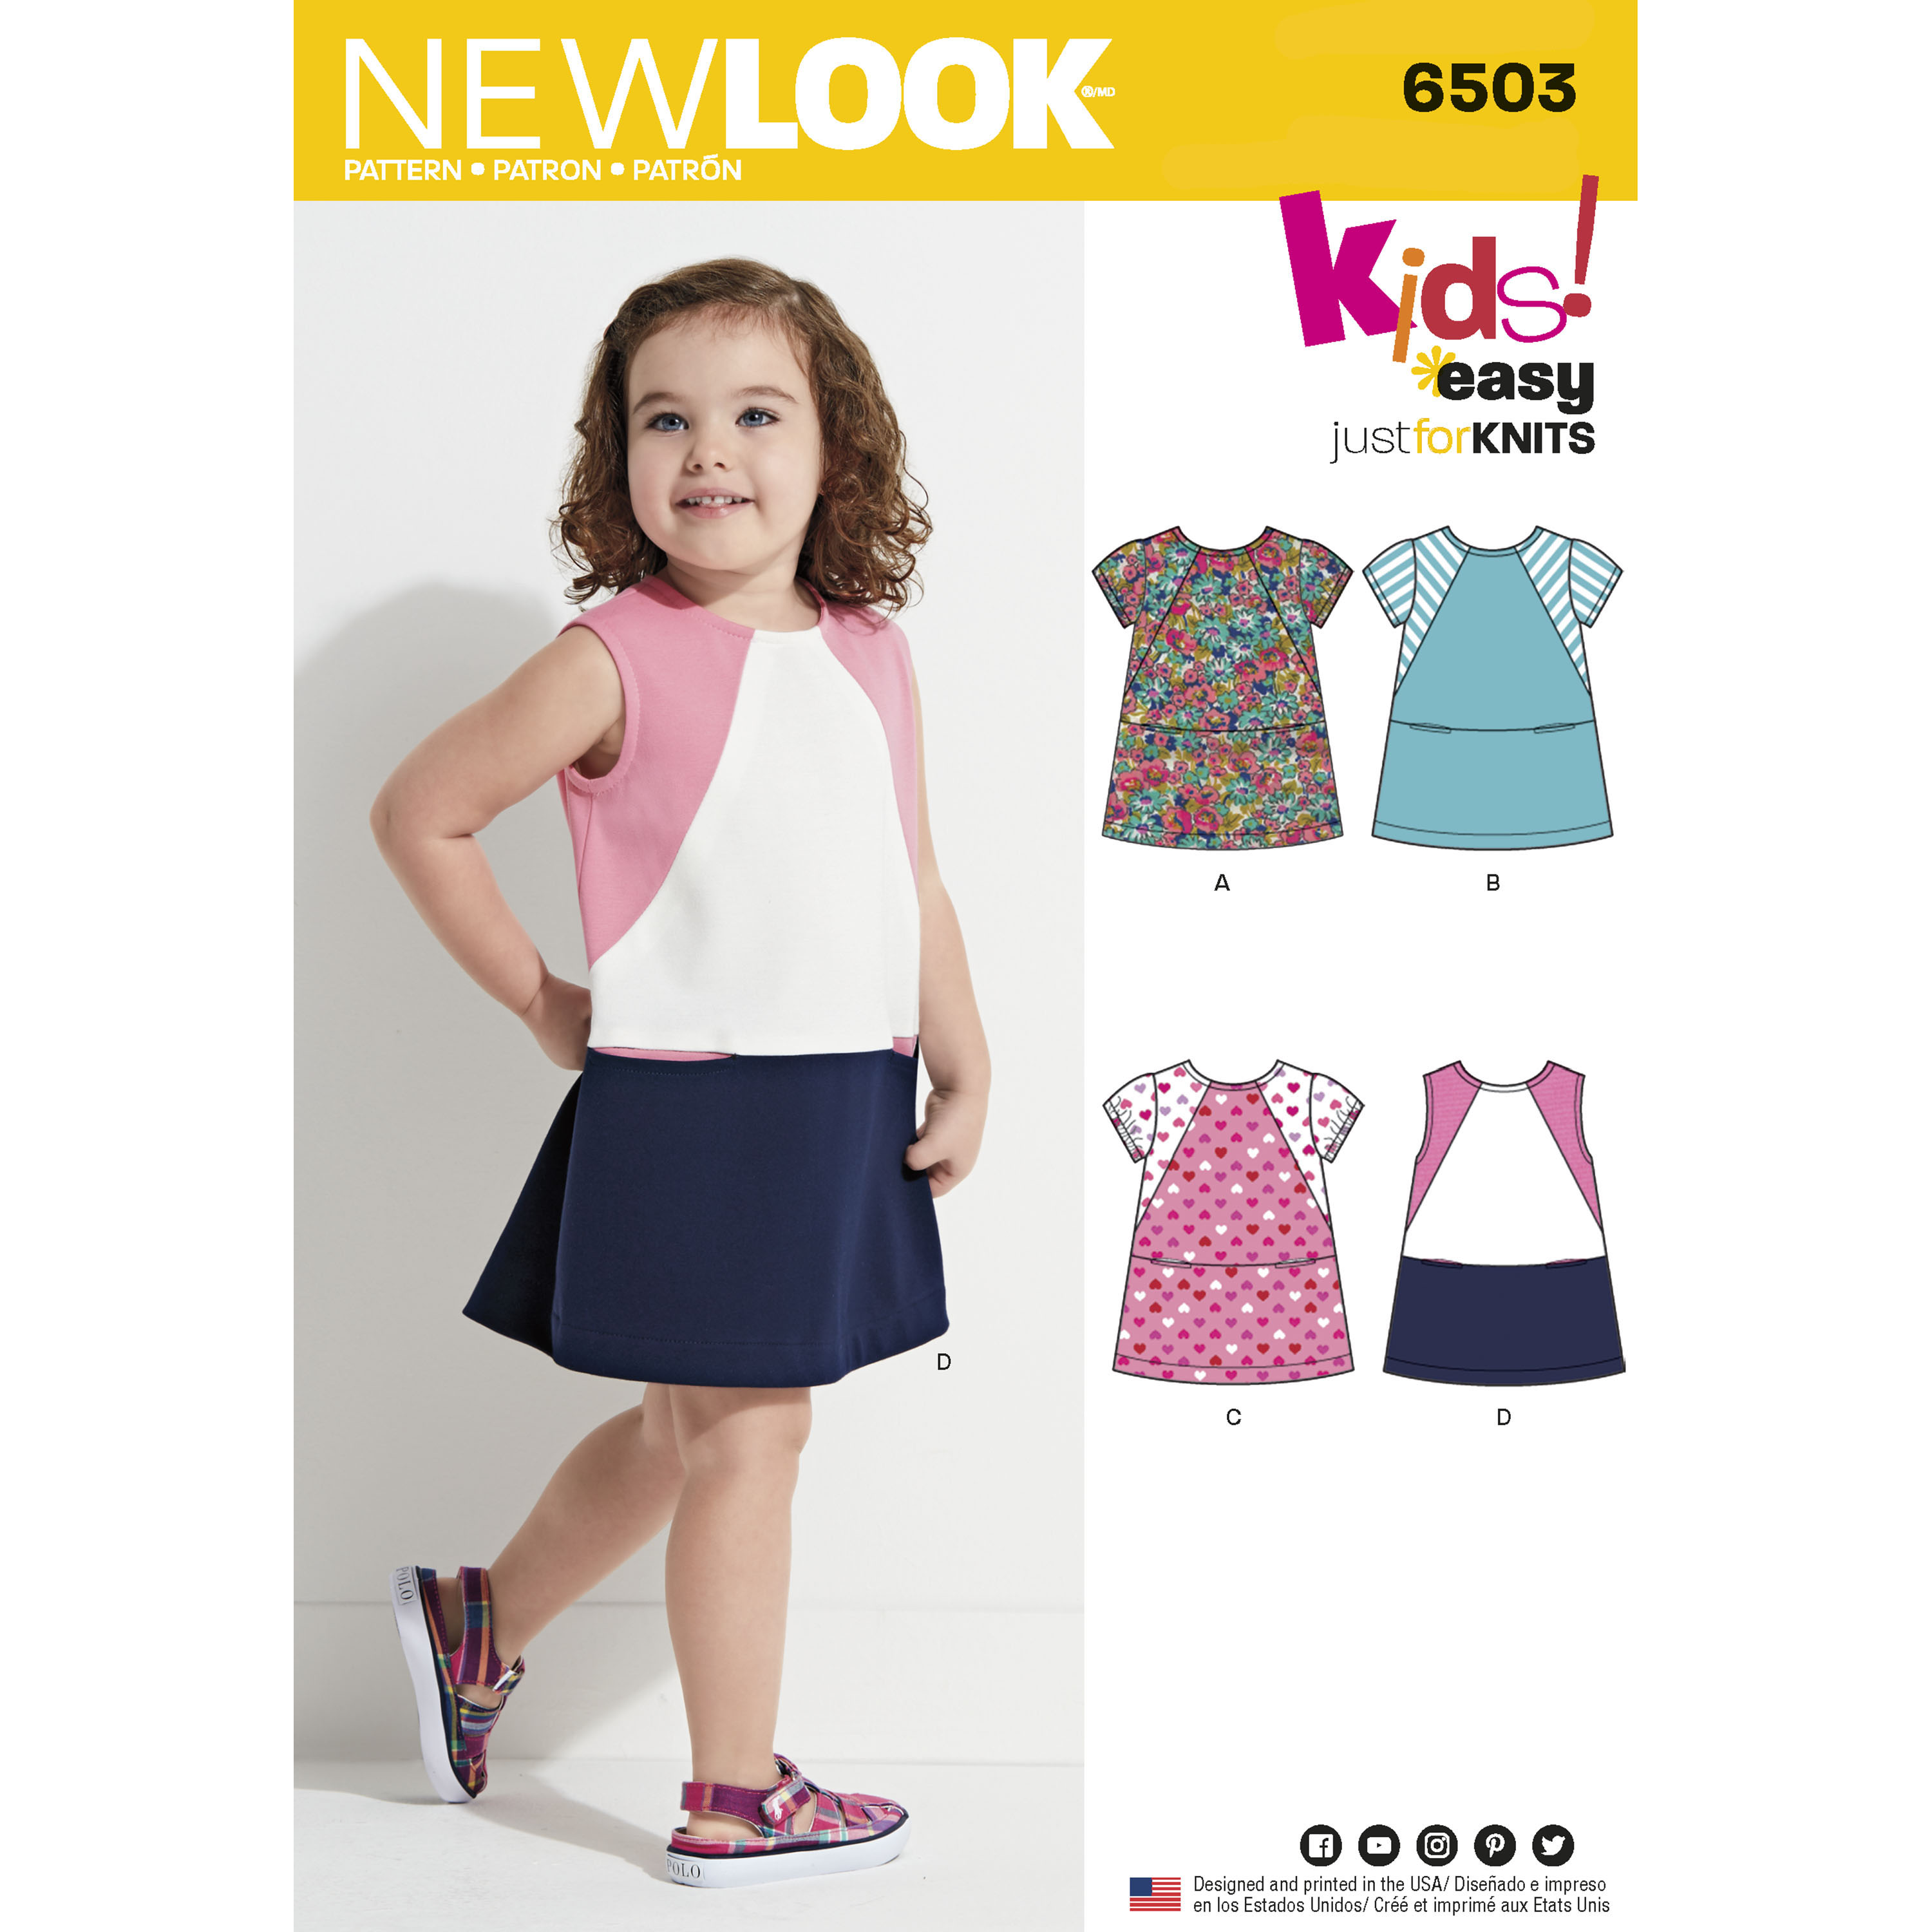 New Look 6503 Toddlers Knit Dress with Sleeve and Fabric Variations